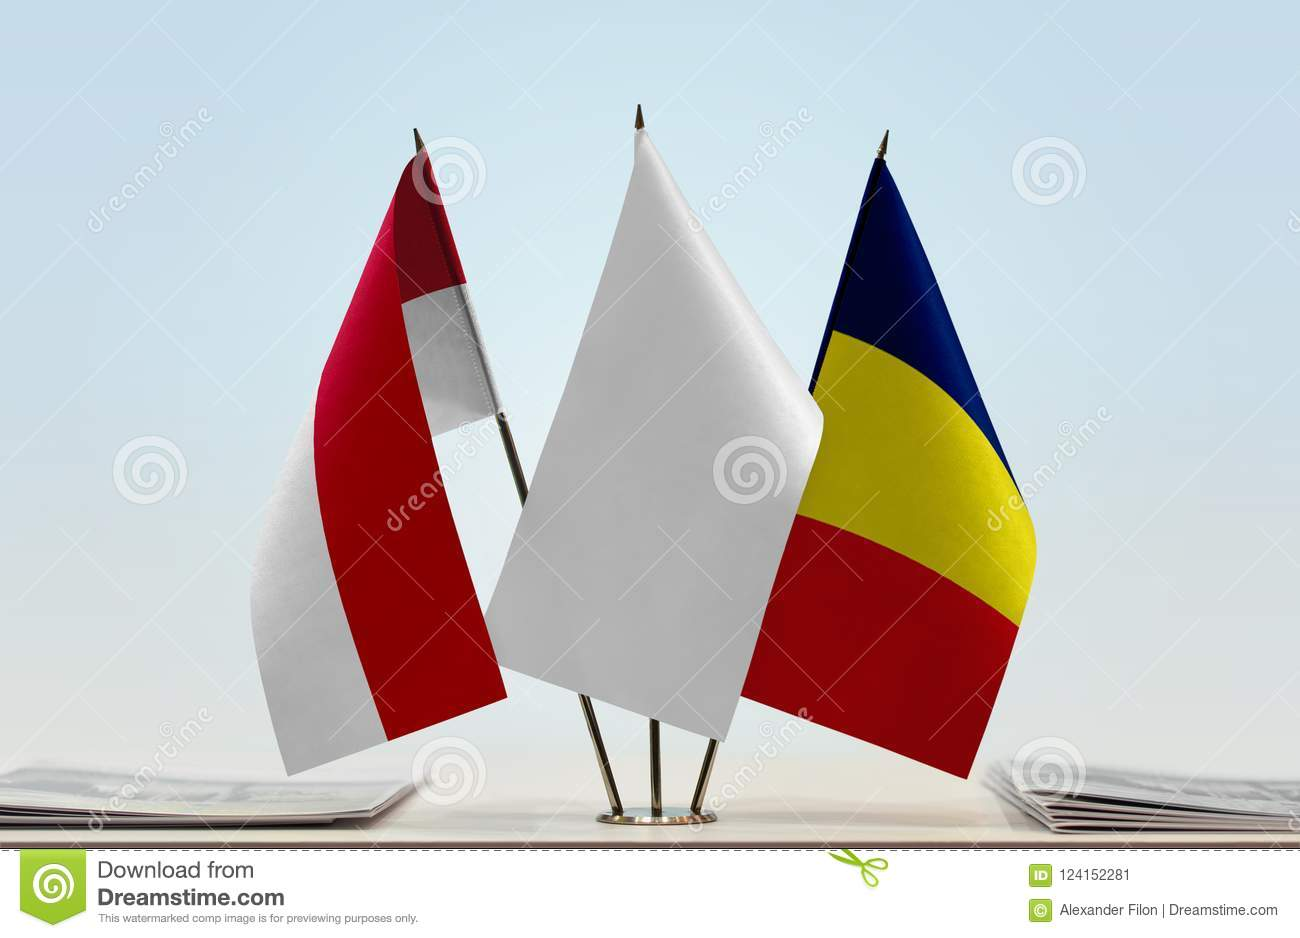 Flags of Monaco and Chad